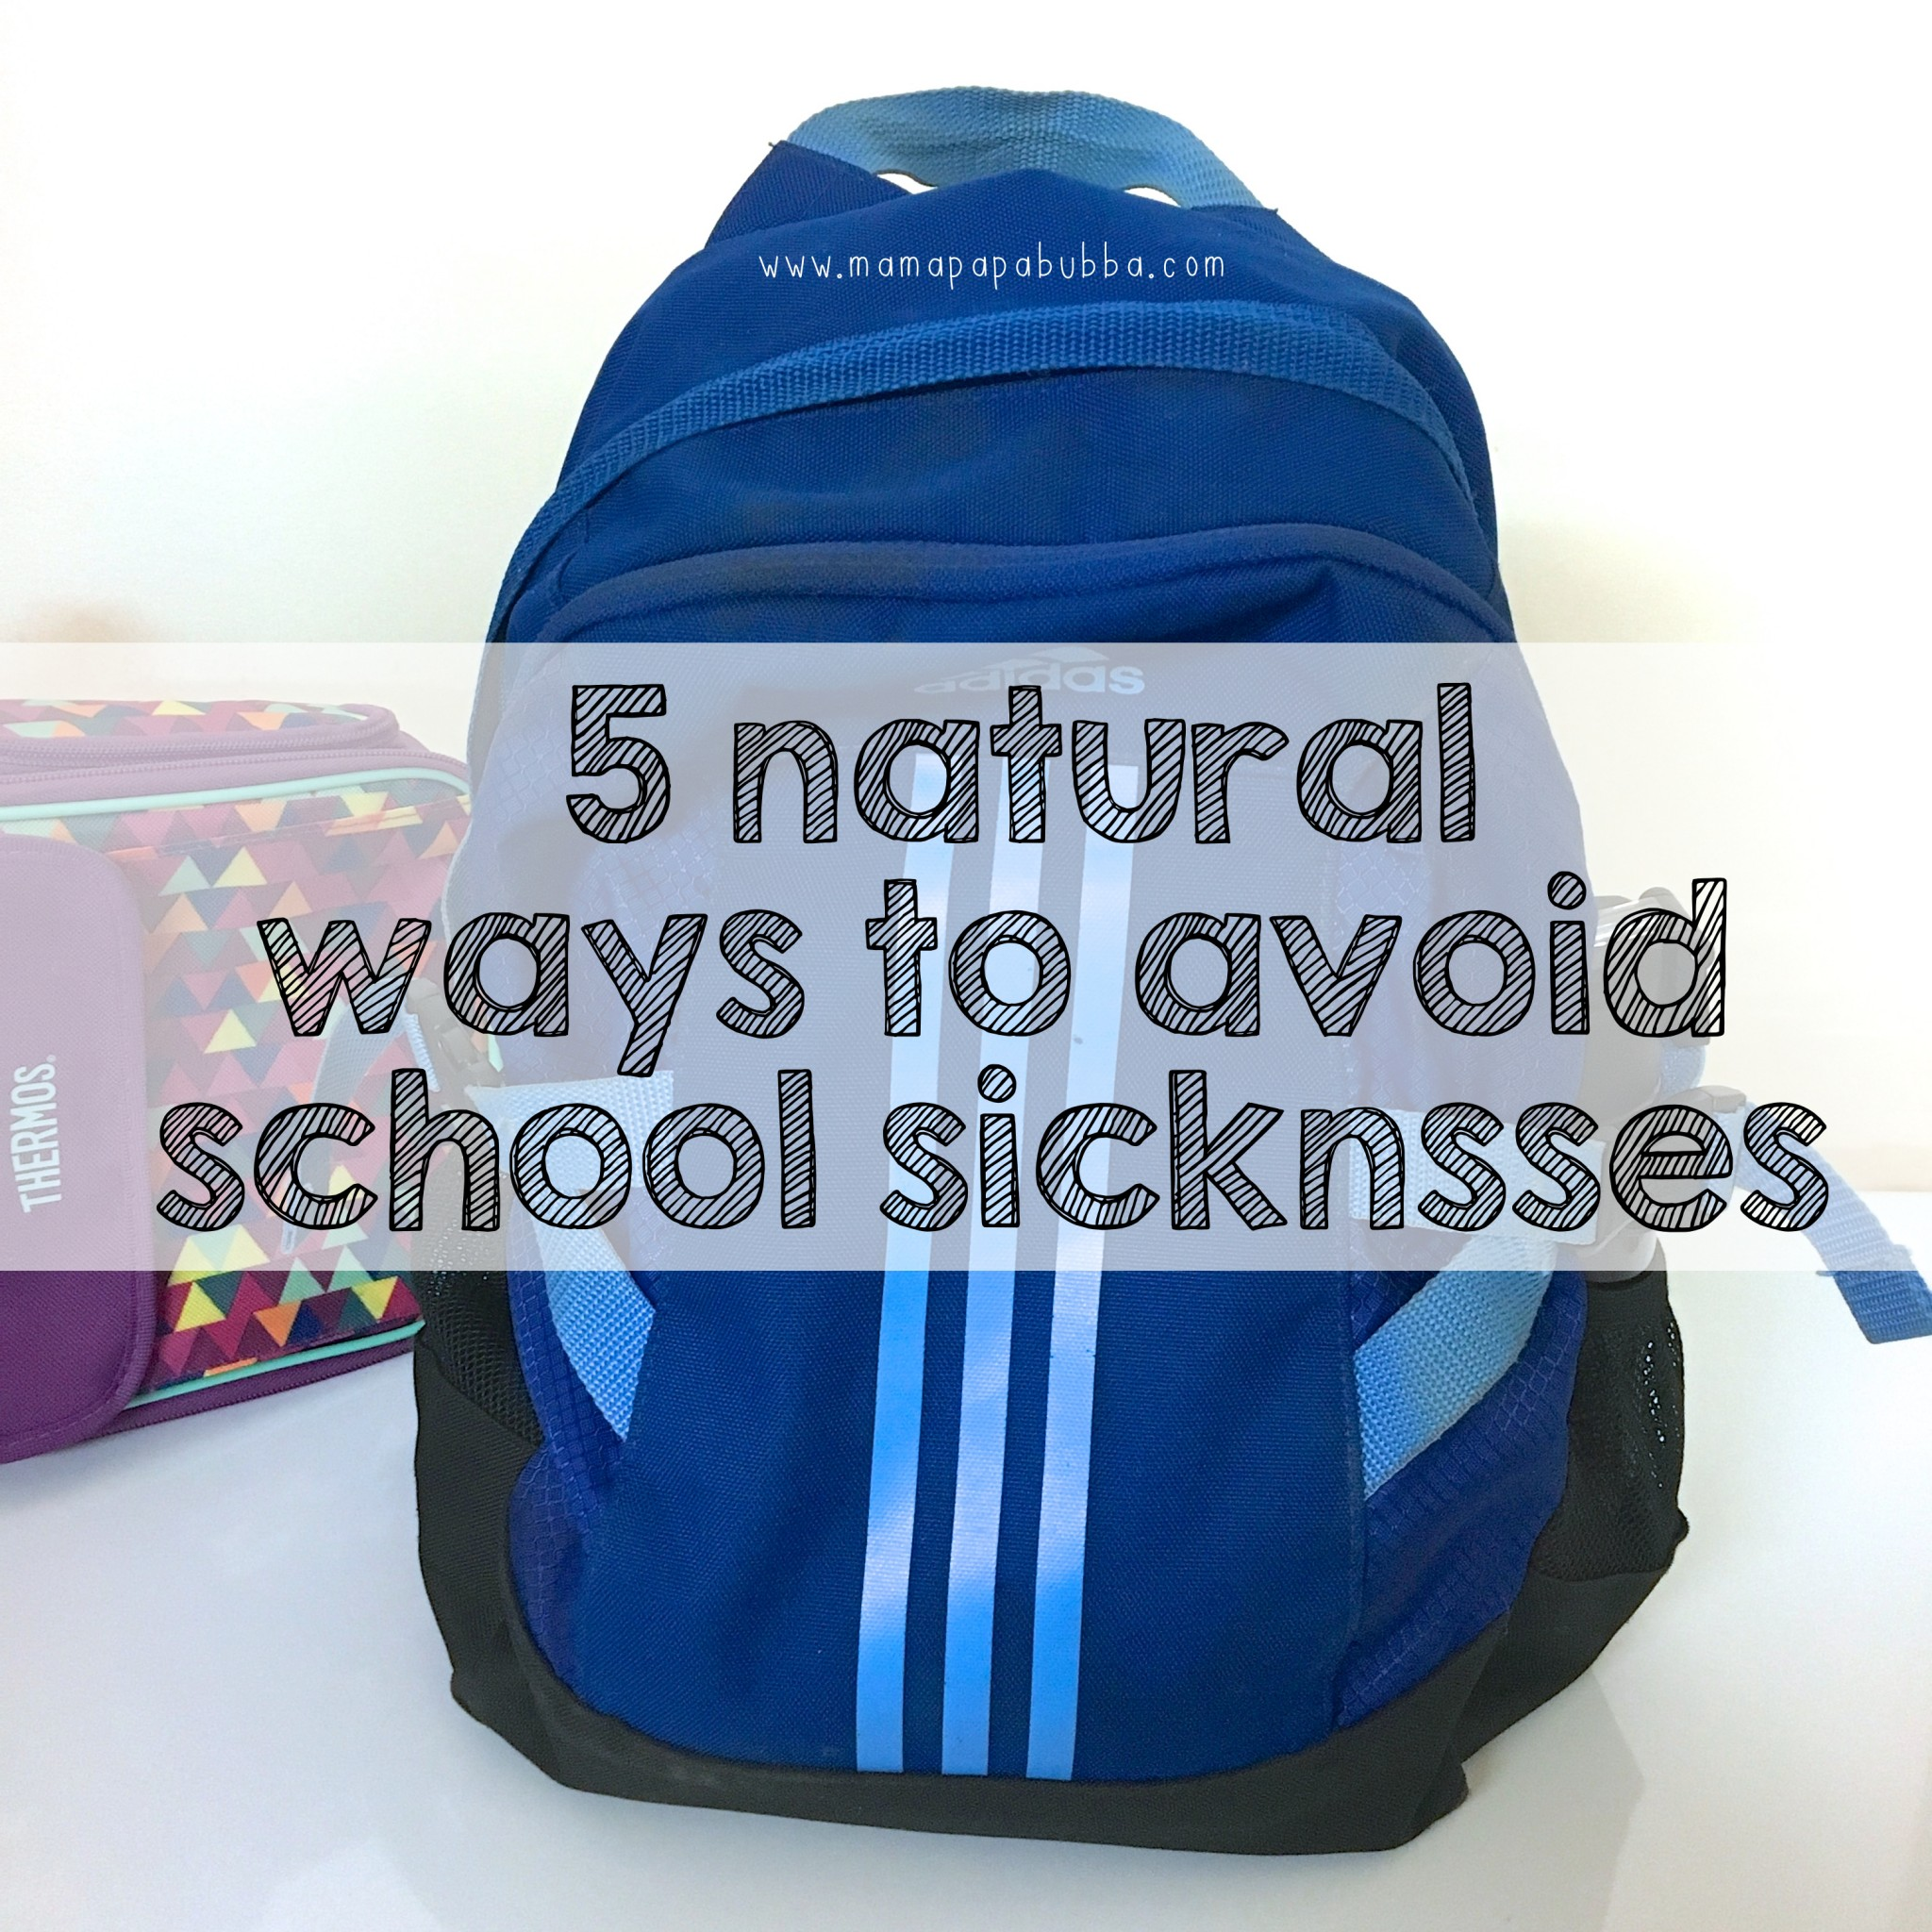 5-natural-ways-to-avoid-school-sicknesses-mama-papa-bubba